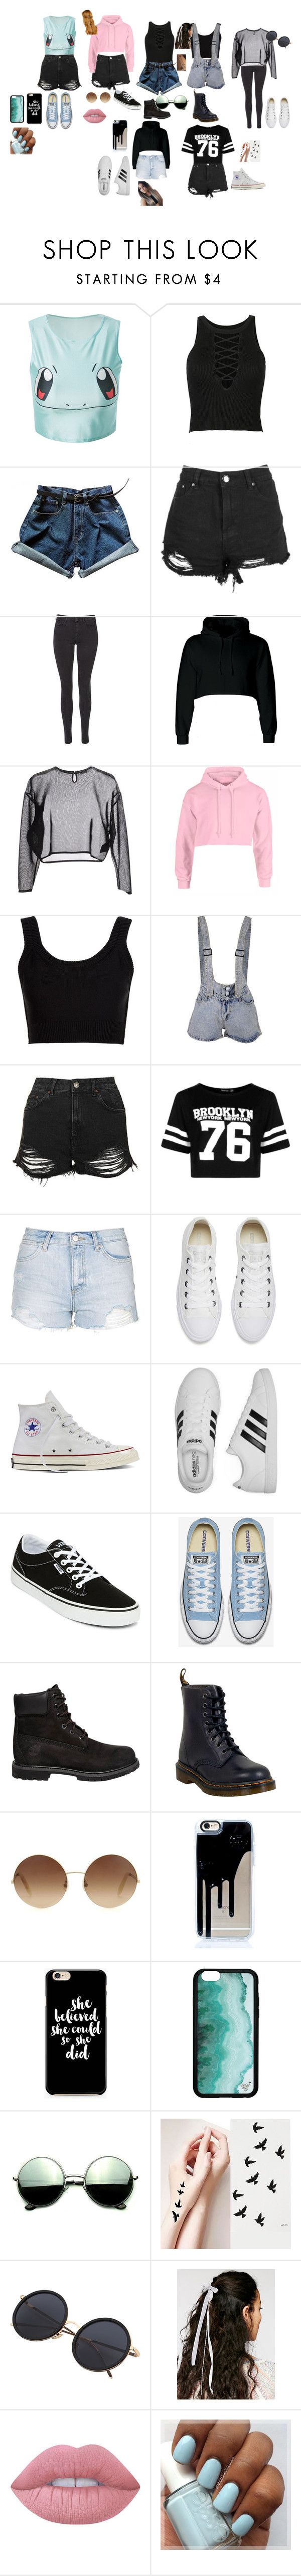 outfit goals by brielouise394 on Polyvore featuring Yves Saint Laurent, Boohoo, Calvin Klein Collection, Topshop, Maison Scotch, adidas, Converse, Dr. Martens, Vans and Timberland